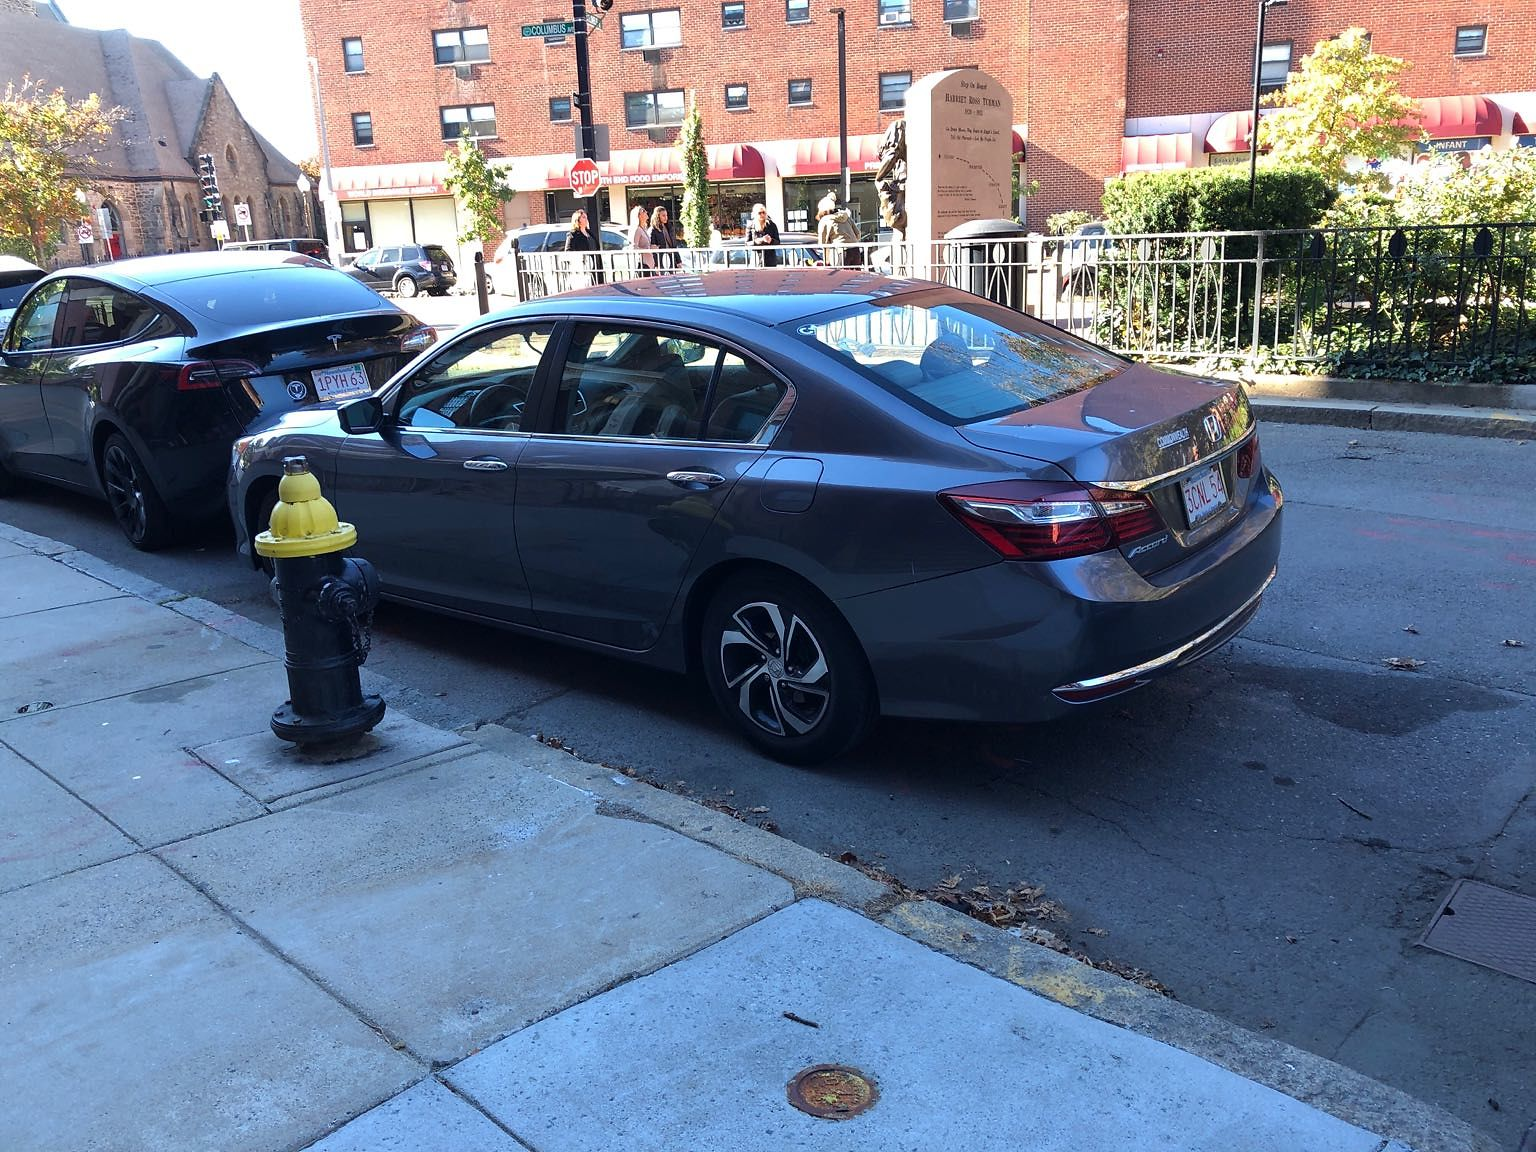 Parked at hydrant